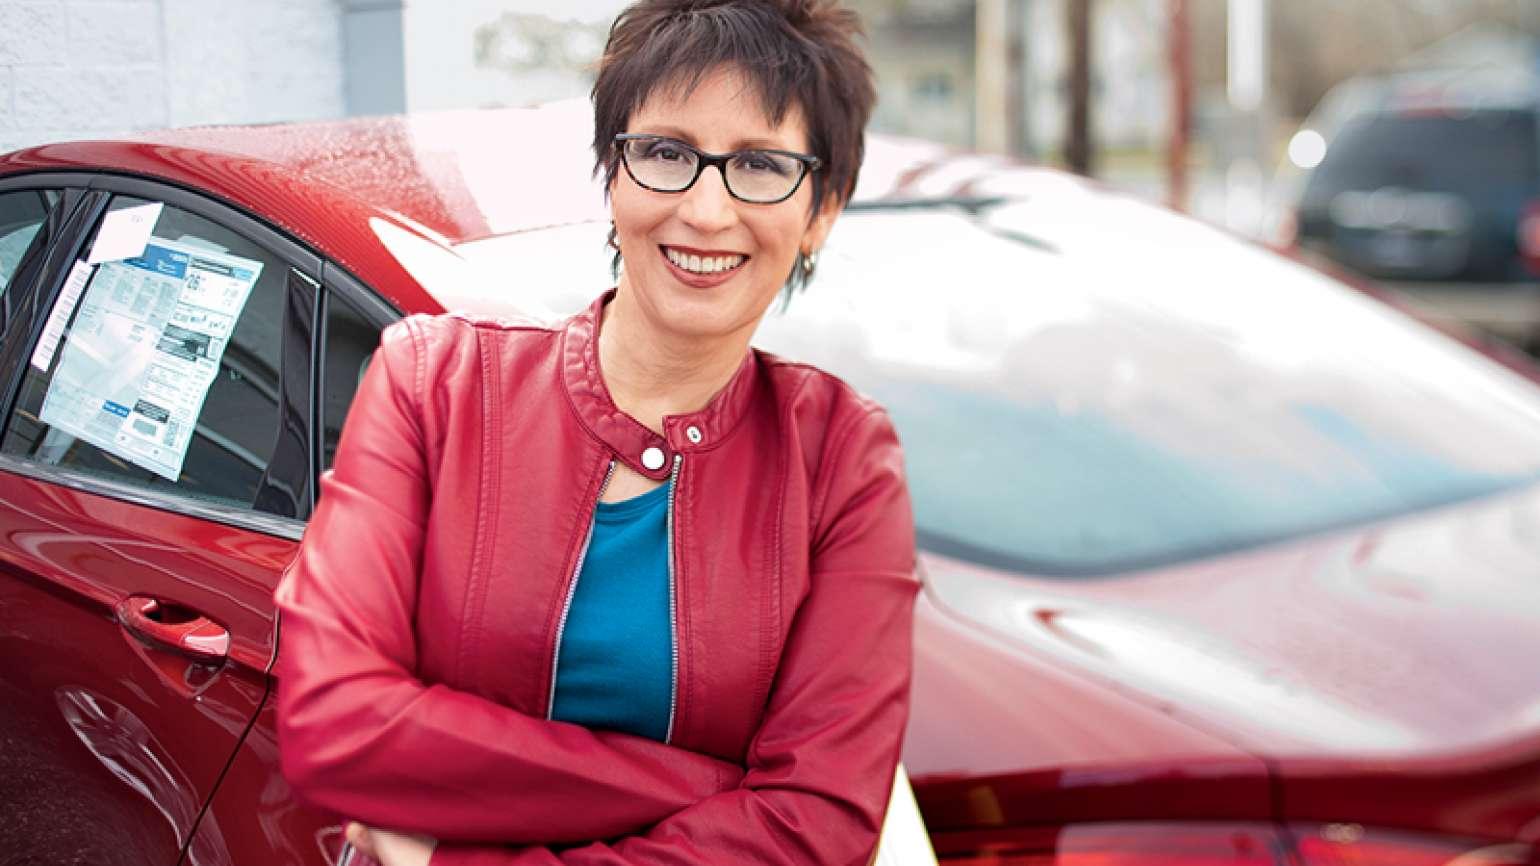 Susan Karas poses by the new car she purchased.